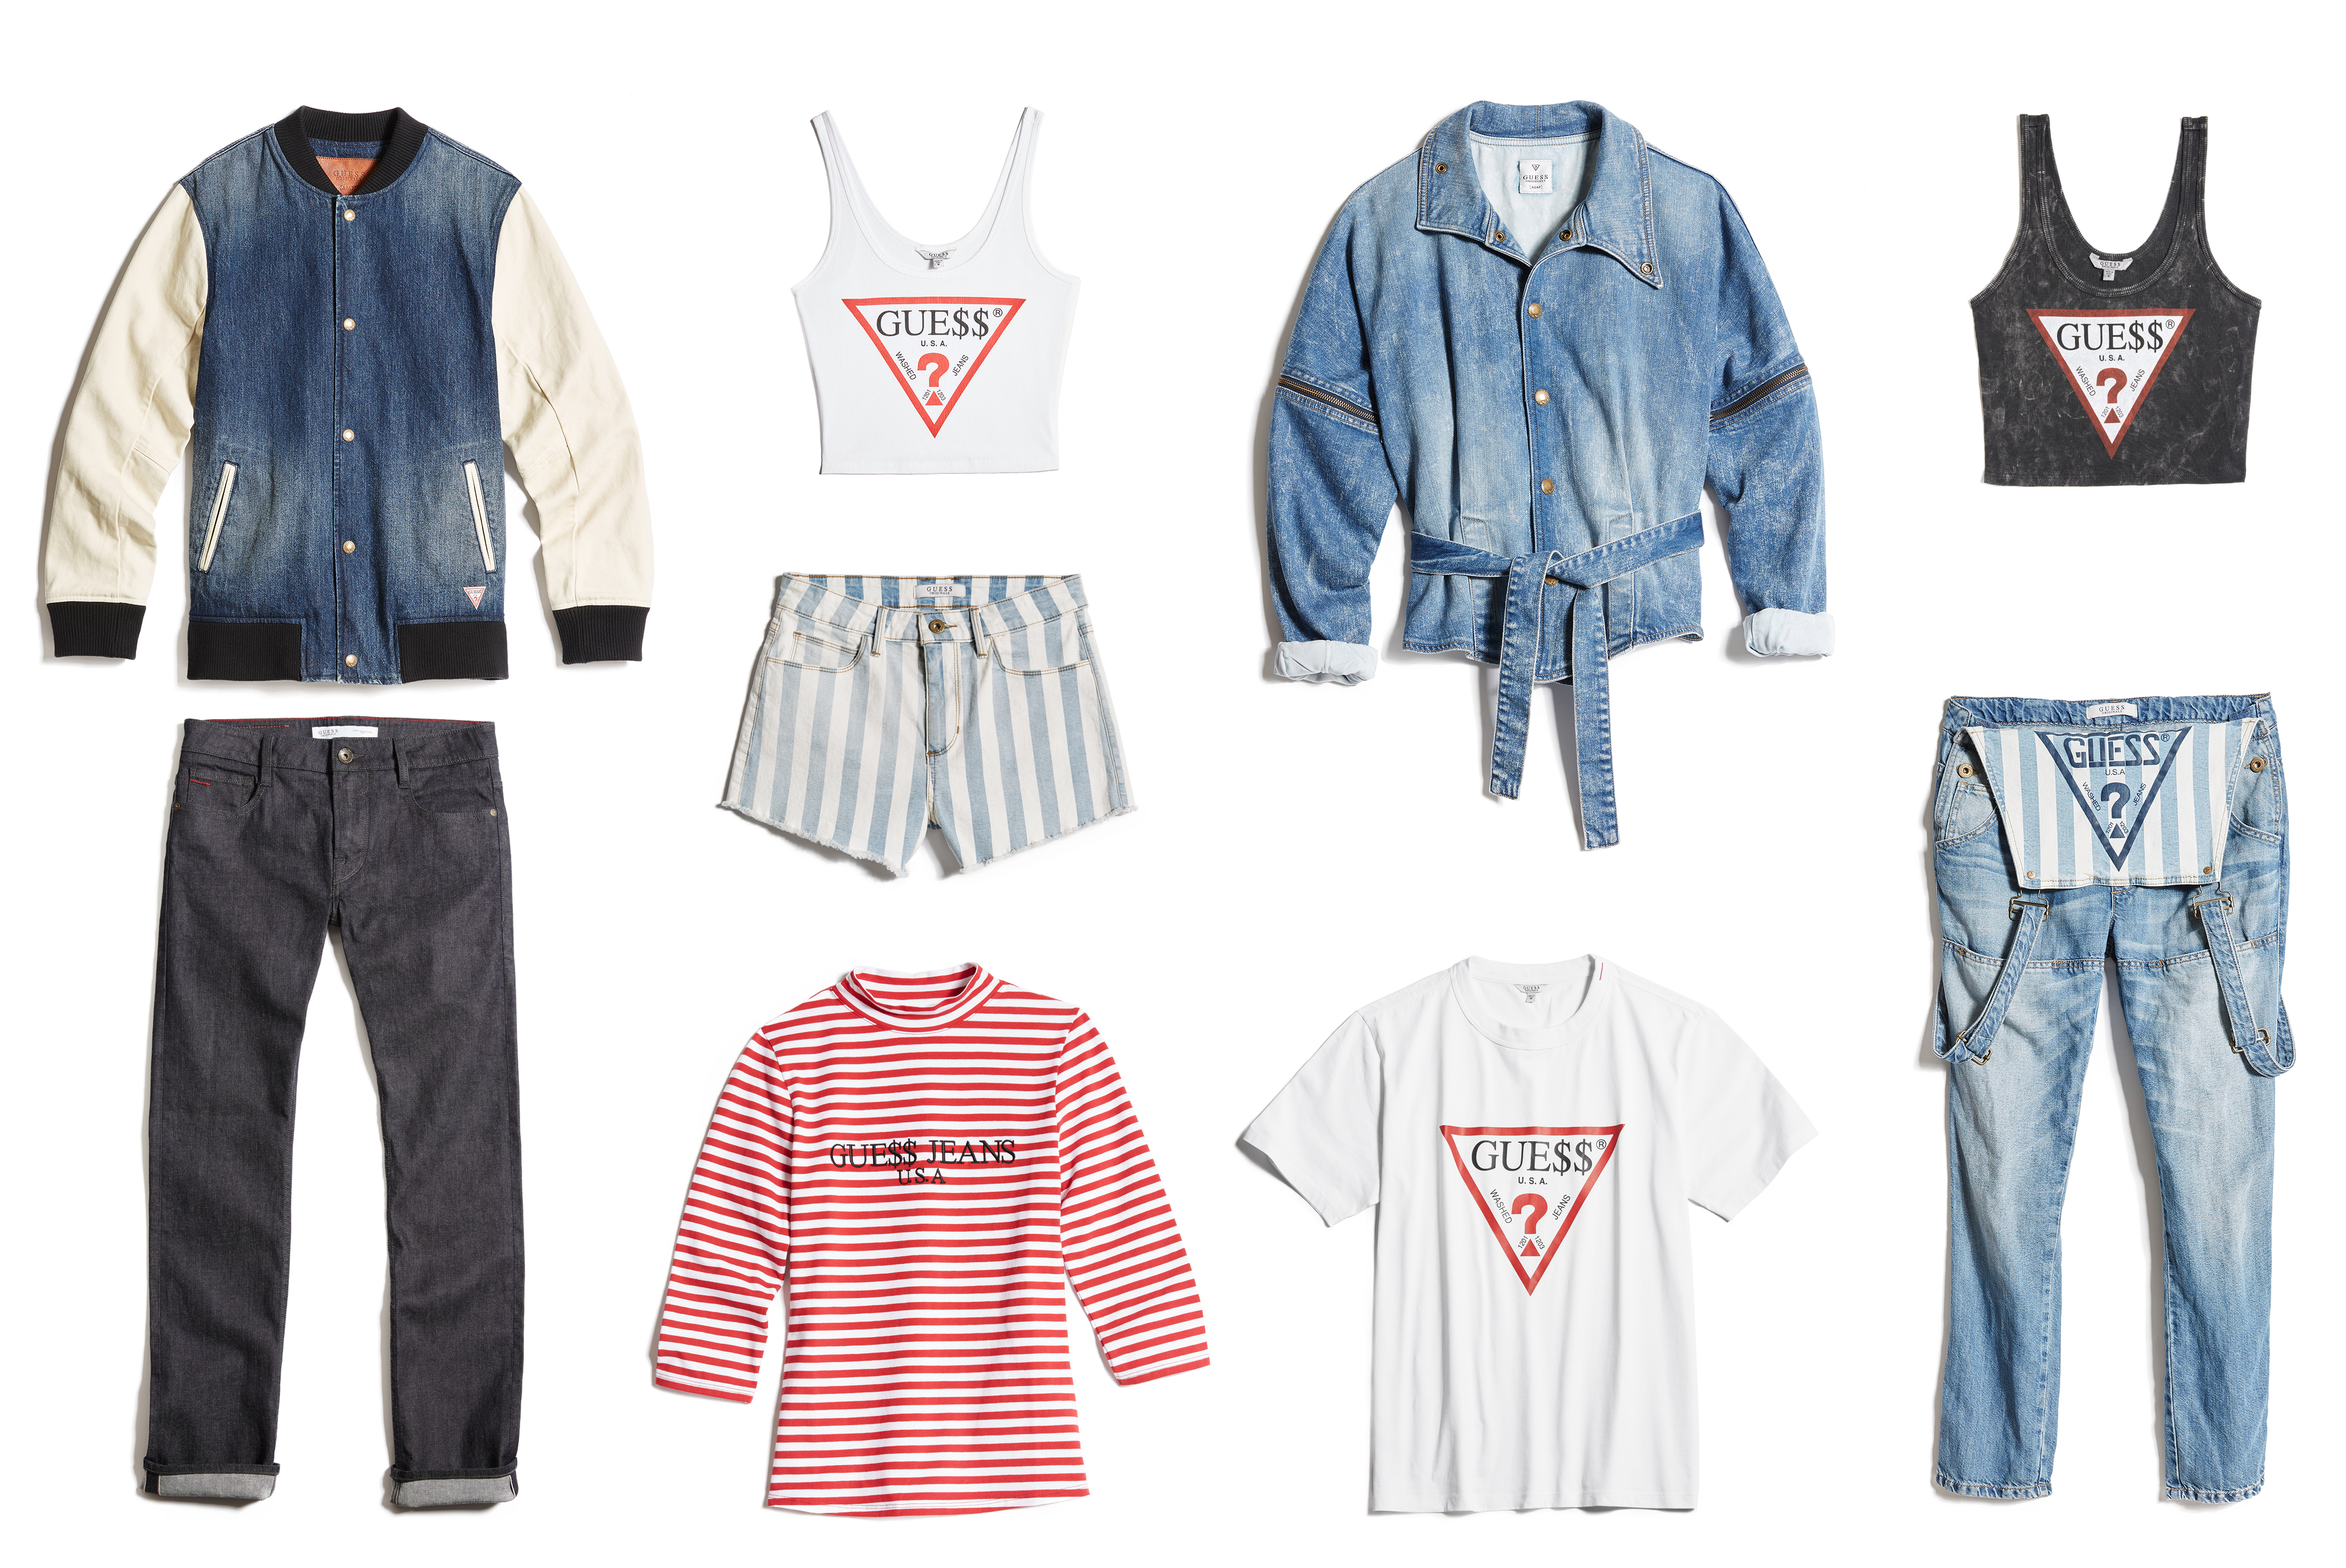 guess-asap-rocky-collection